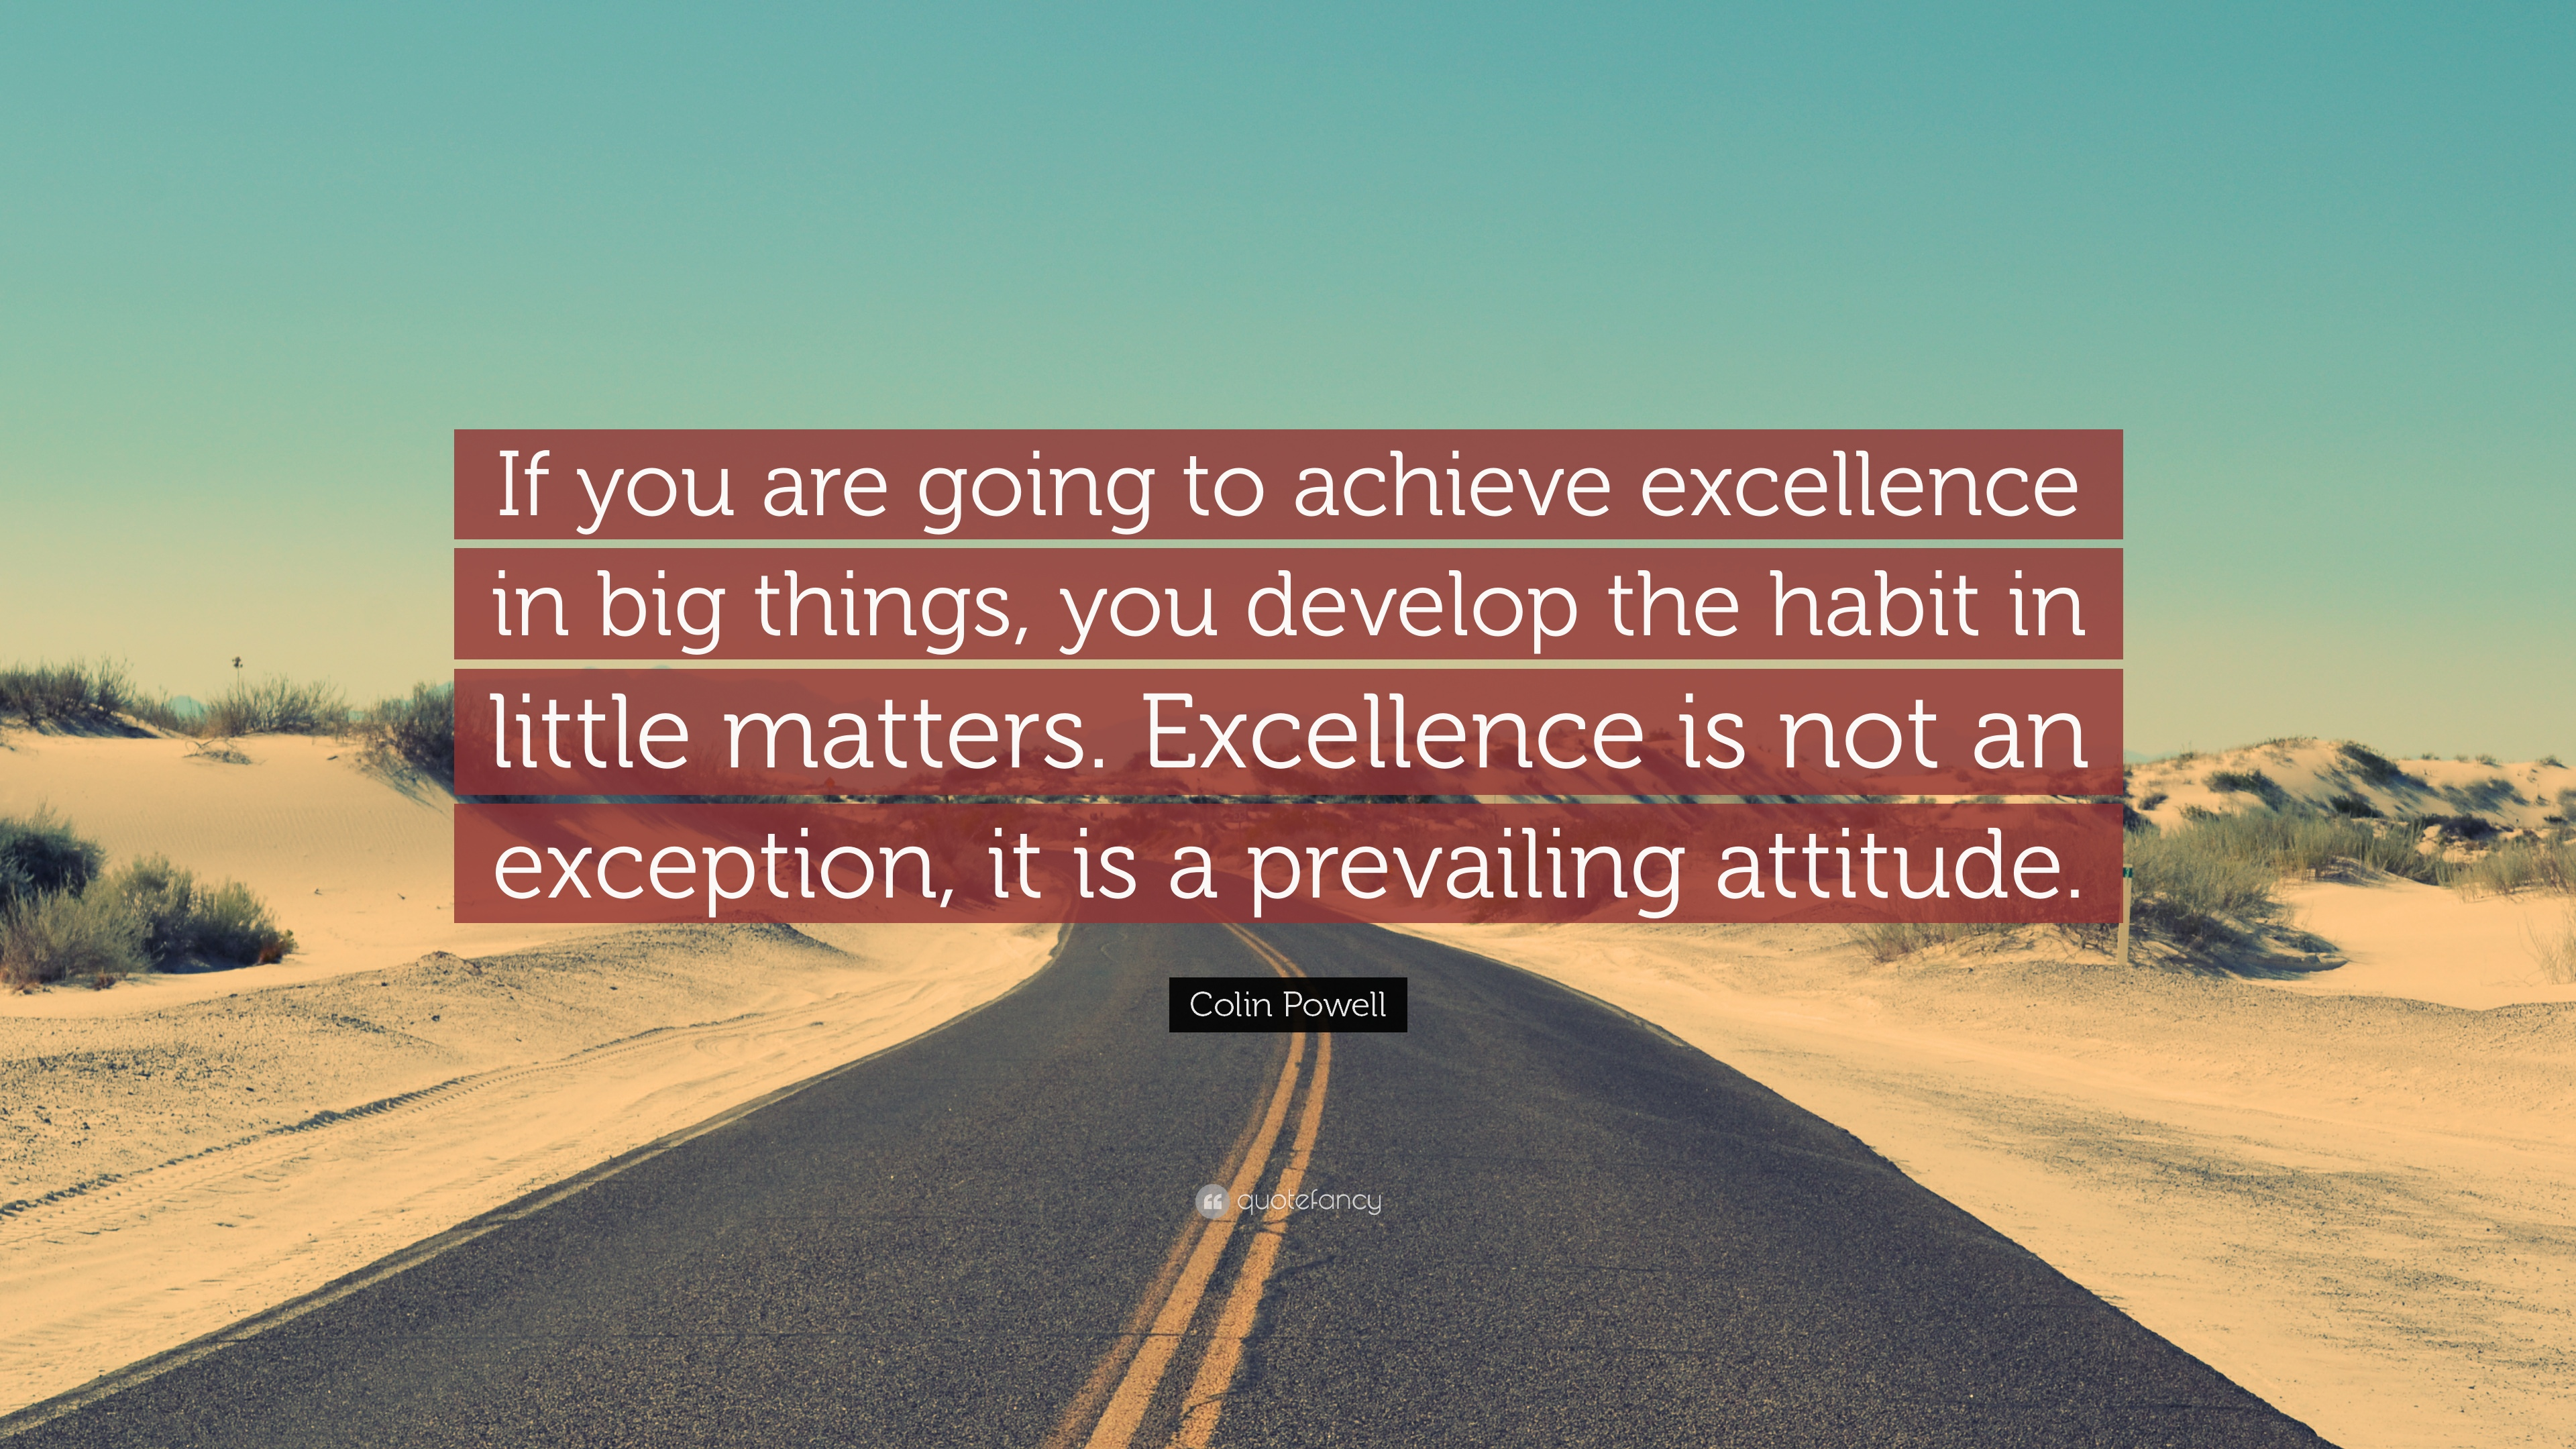 Achieve Quotes Wallpaper Colin Powell Quote If You Are Going To Achieve